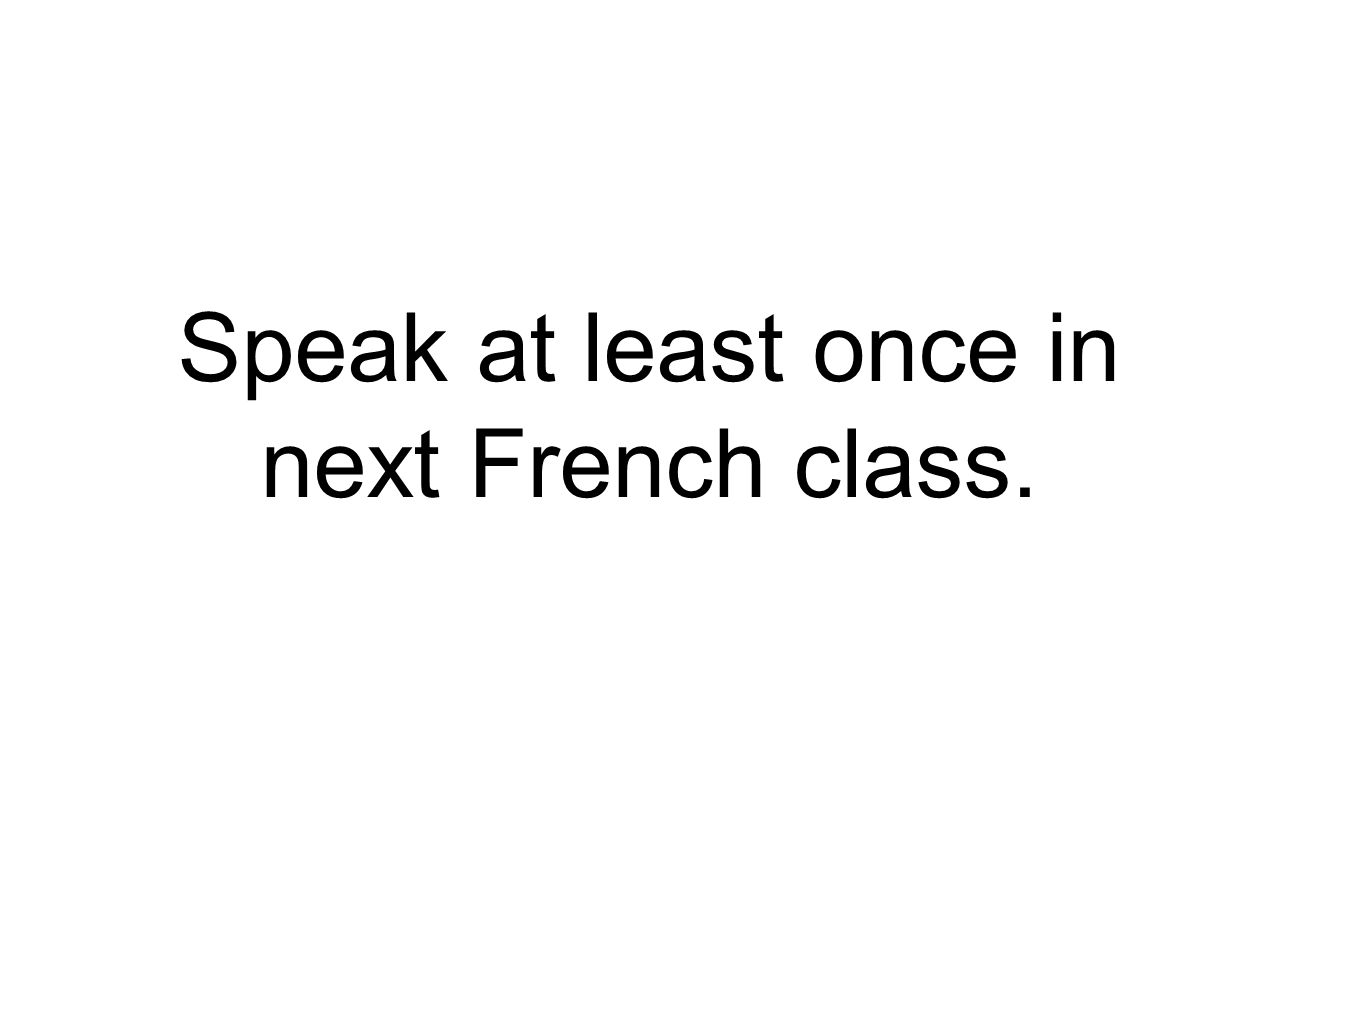 Speak at least once in next French class.